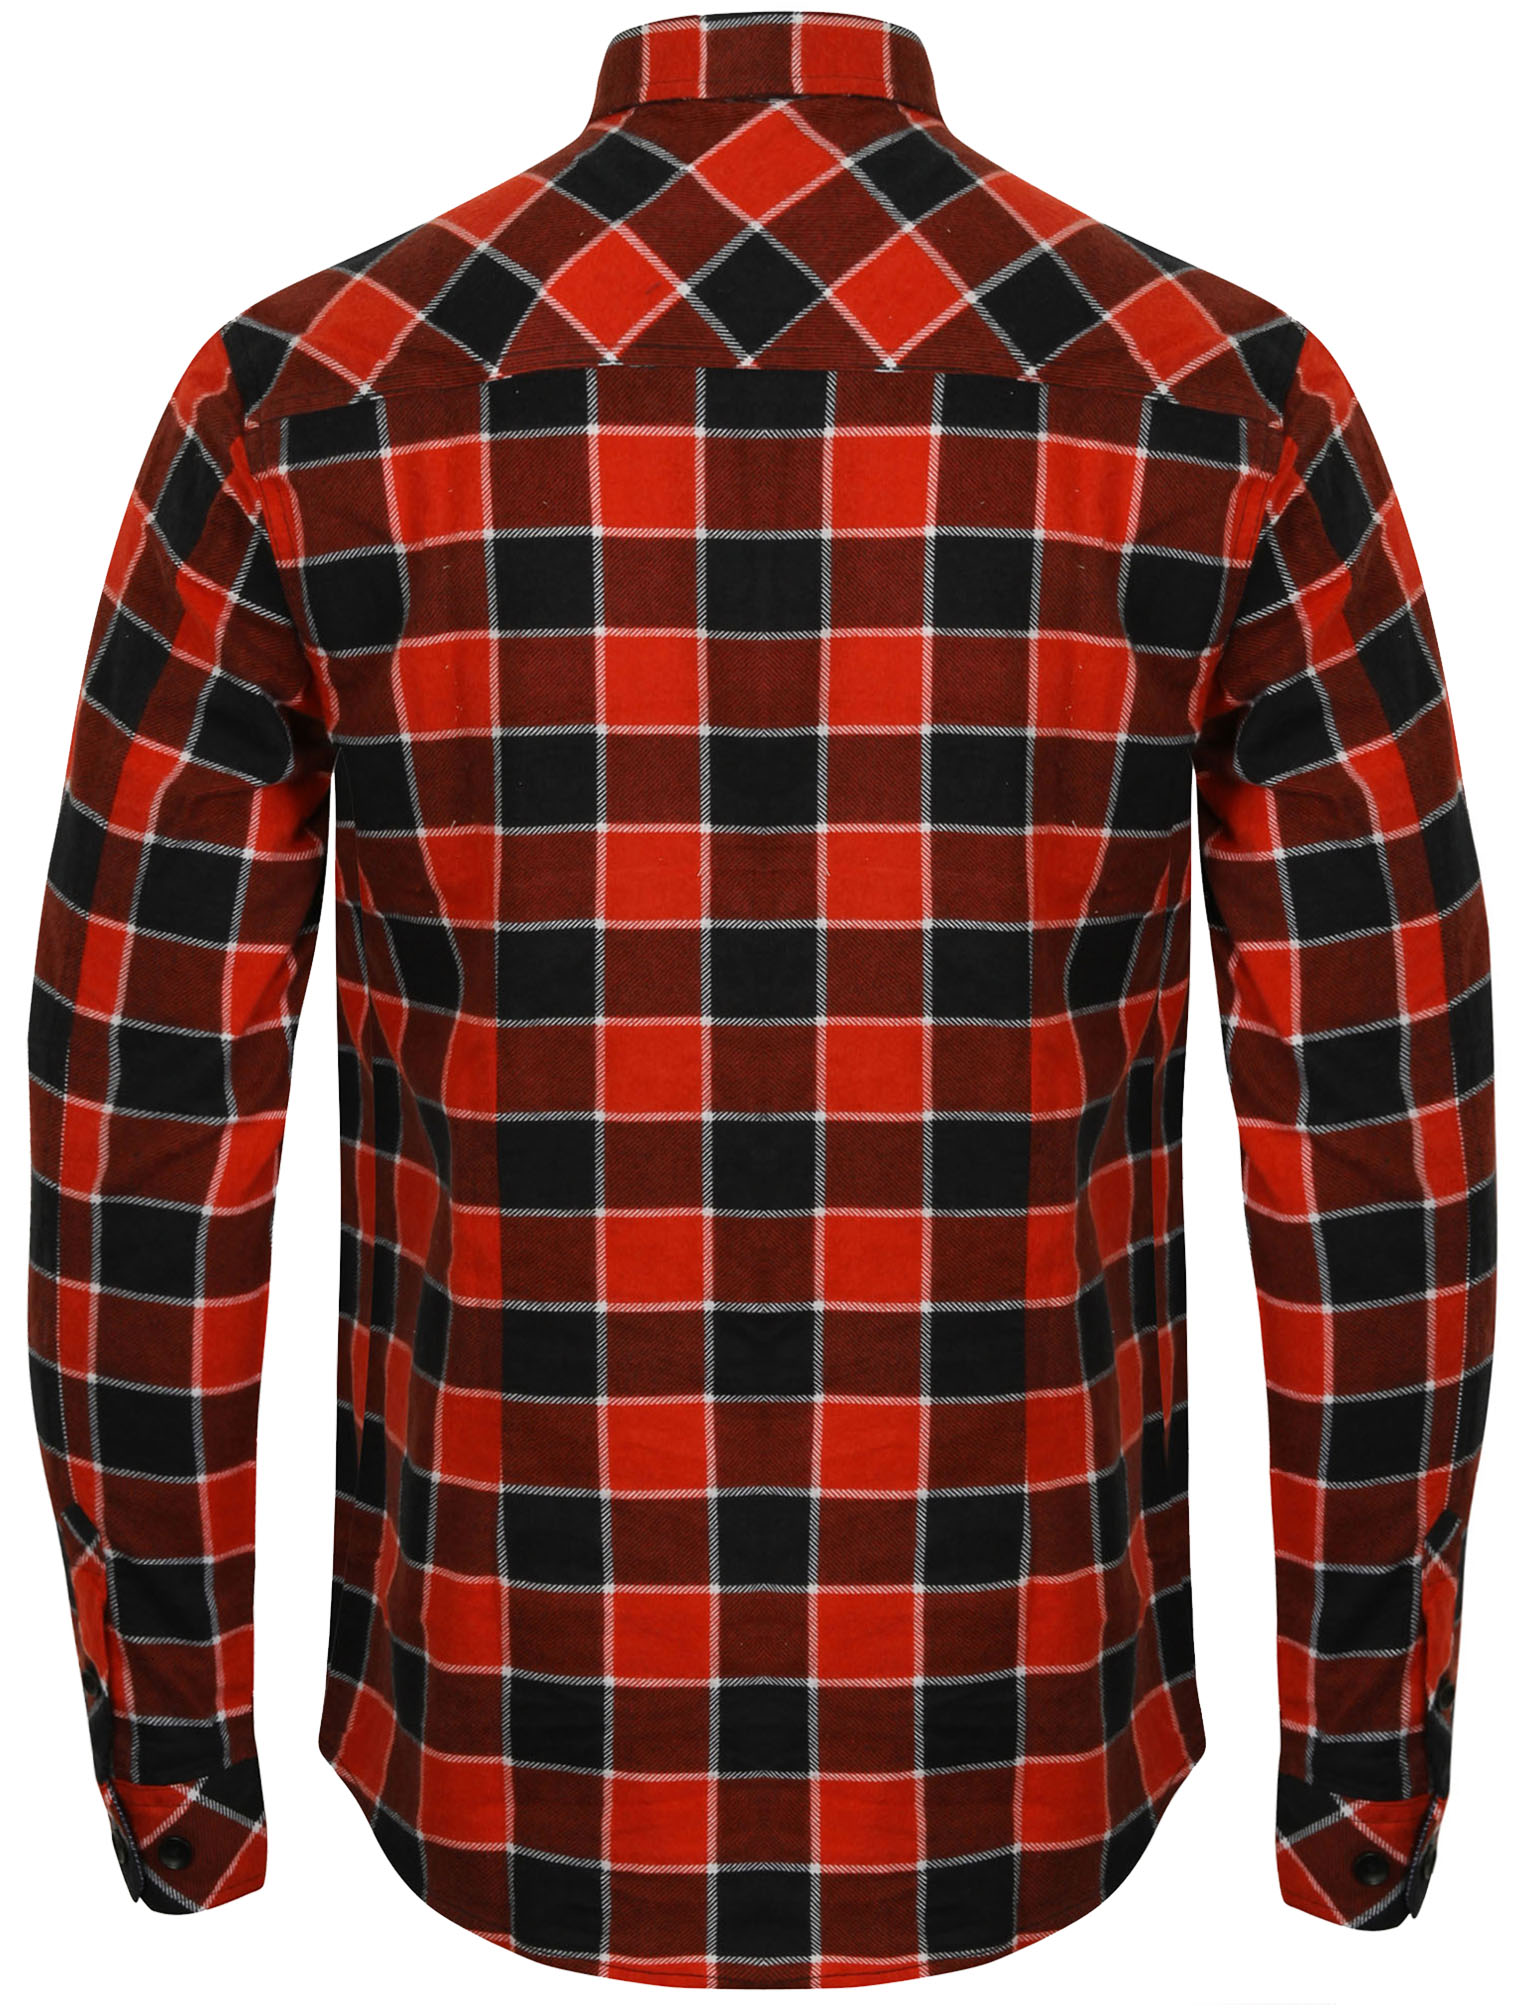 New-Mens-Tokyo-Laundry-Cotton-Long-Sleeve-Checked-Flannel-Shirt-Size-S-XL thumbnail 11